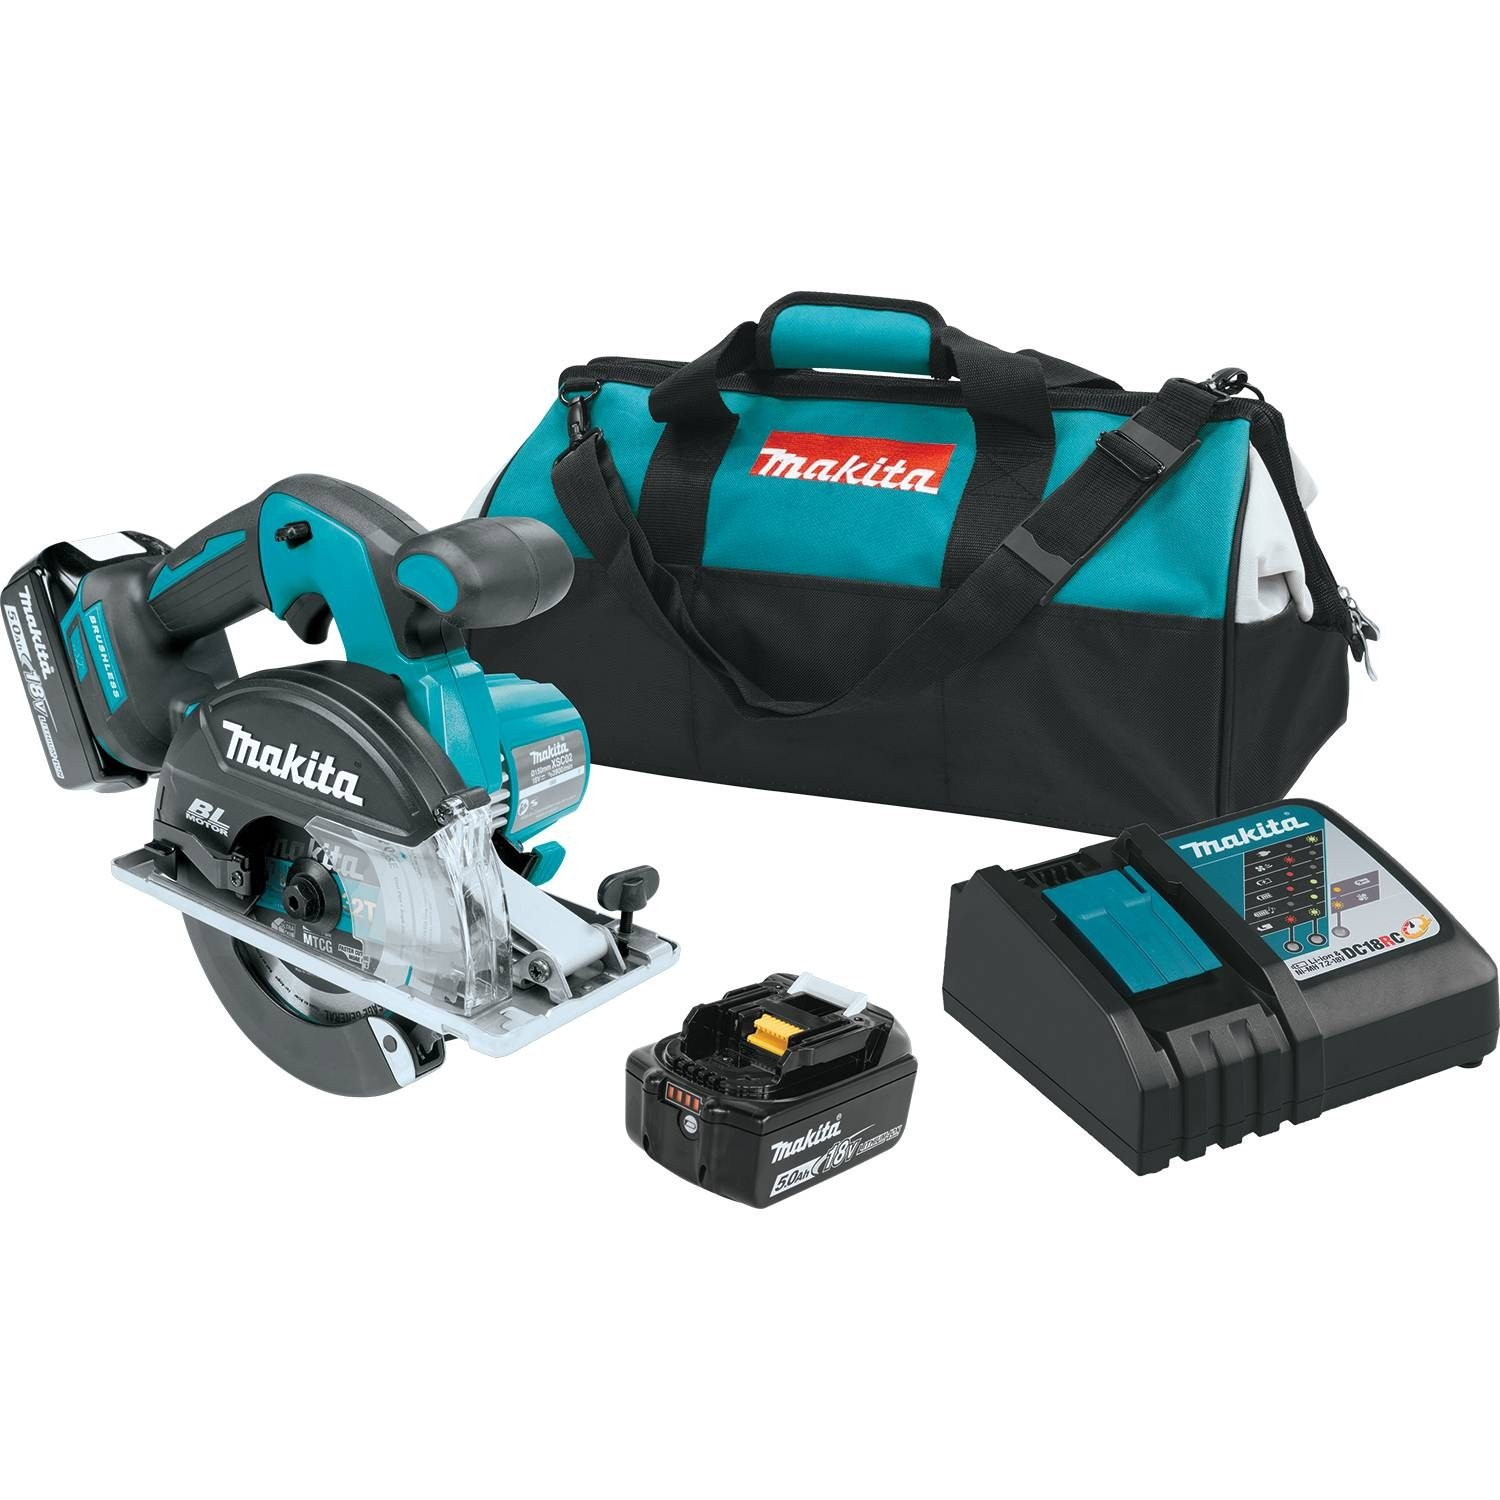 Makita XSC02T 5.0 Amp 18V LXT Lithium-Ion Brushless Cordless 5-7 8 Metal Cutting Saw Kit